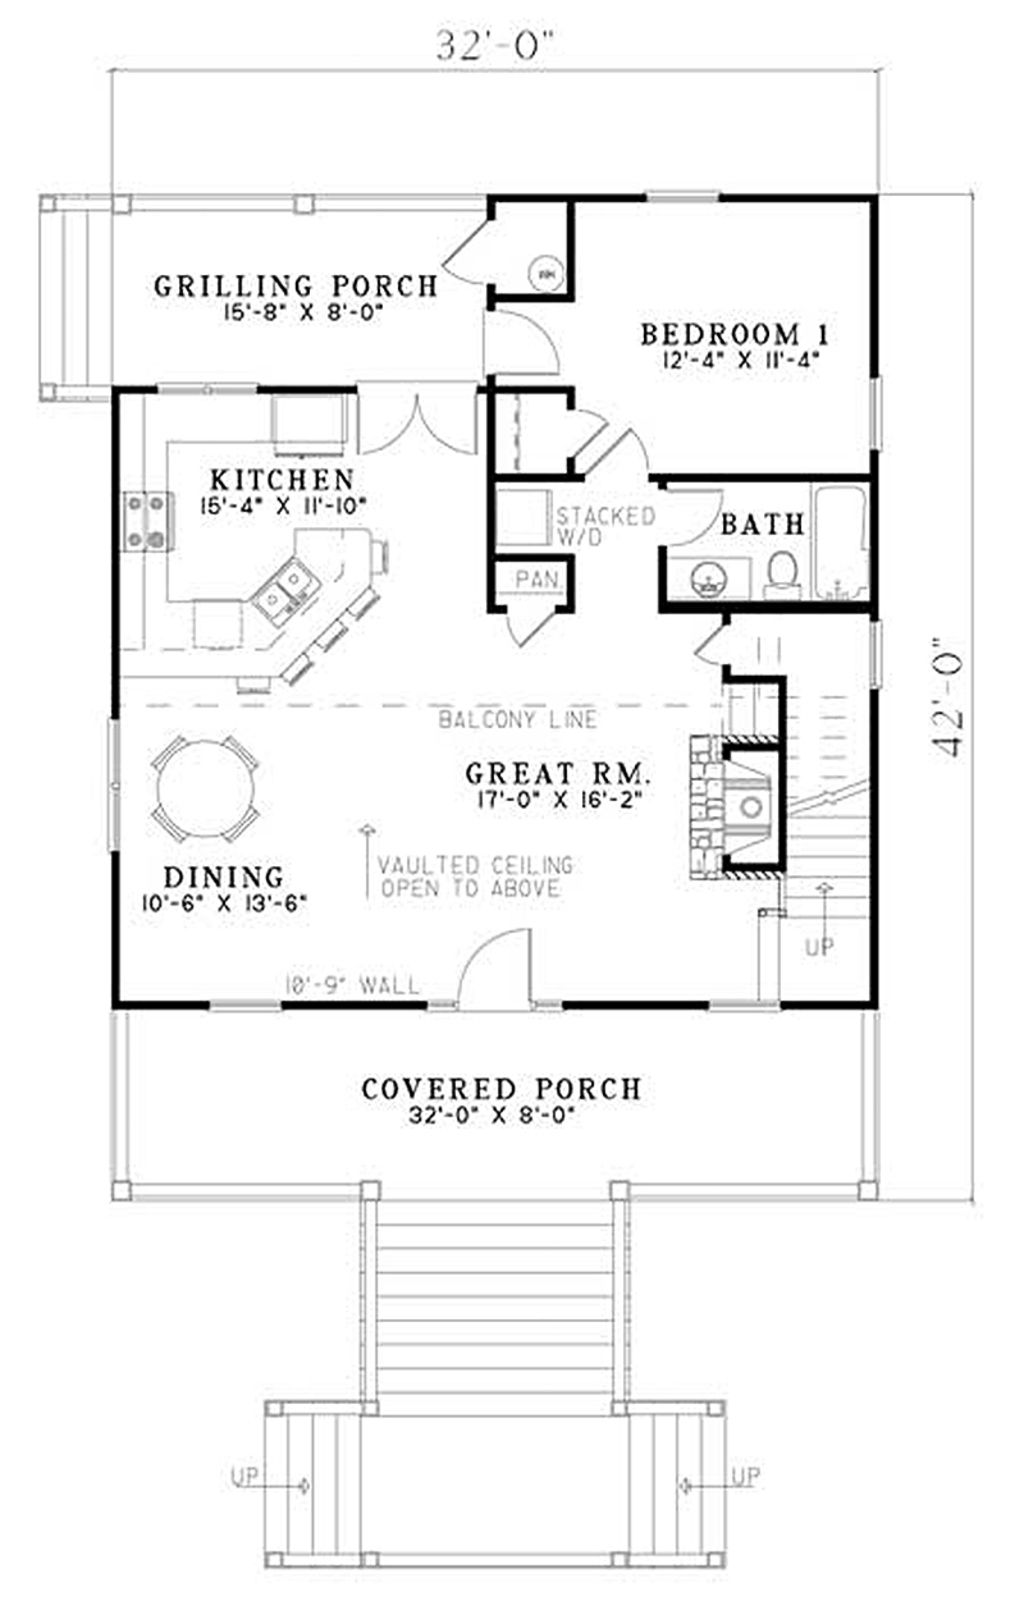 Cabin style house plan 2 beds 2 baths 1400 sq ft plan for 1400 sq ft house plans with basement